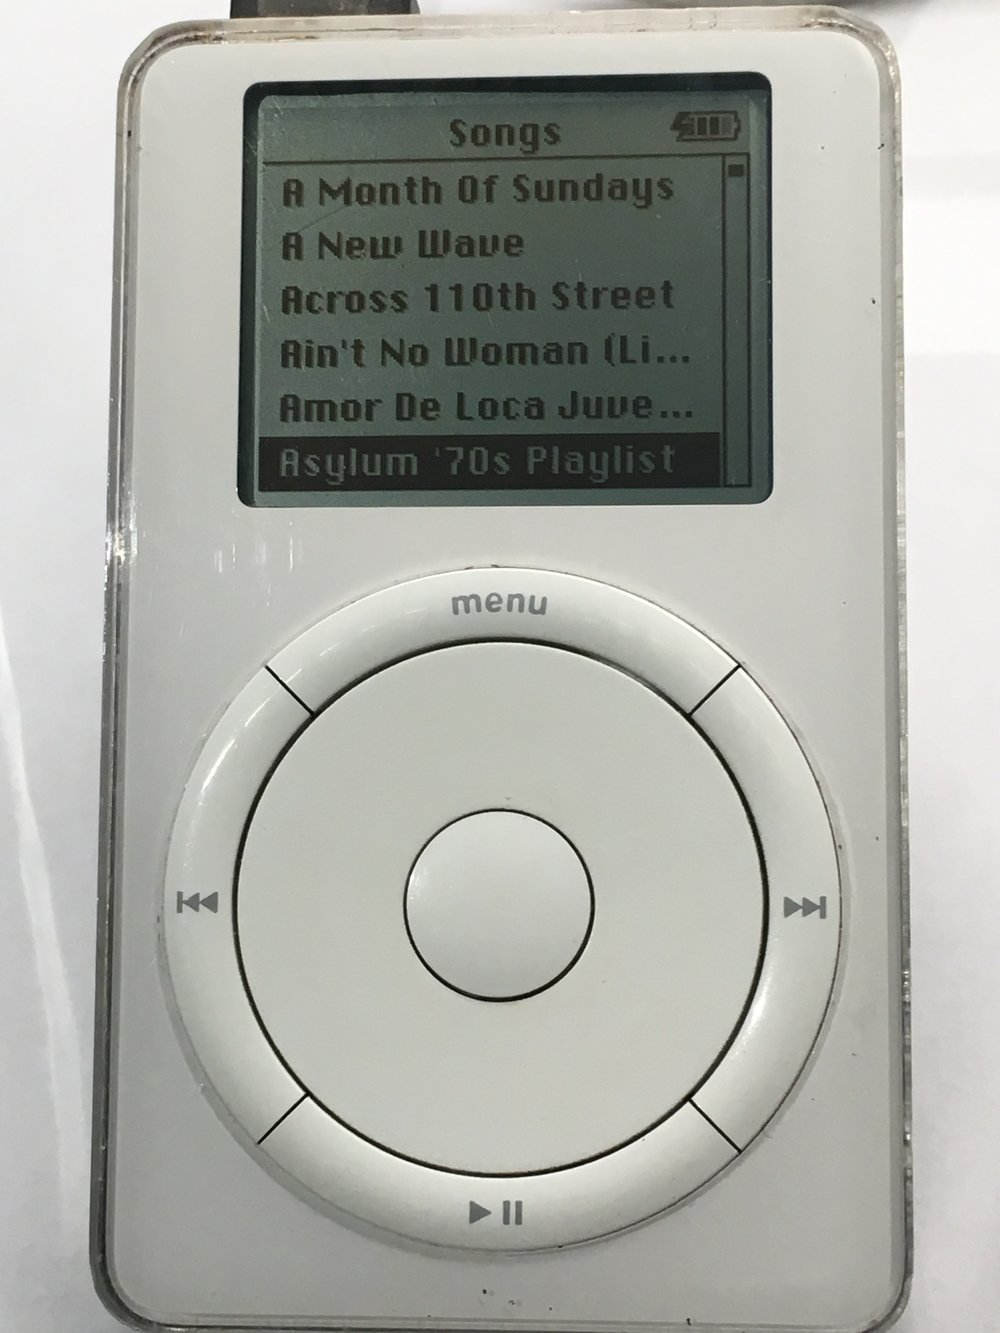 The iPod Original was a 2001 Christmas gift from Donna